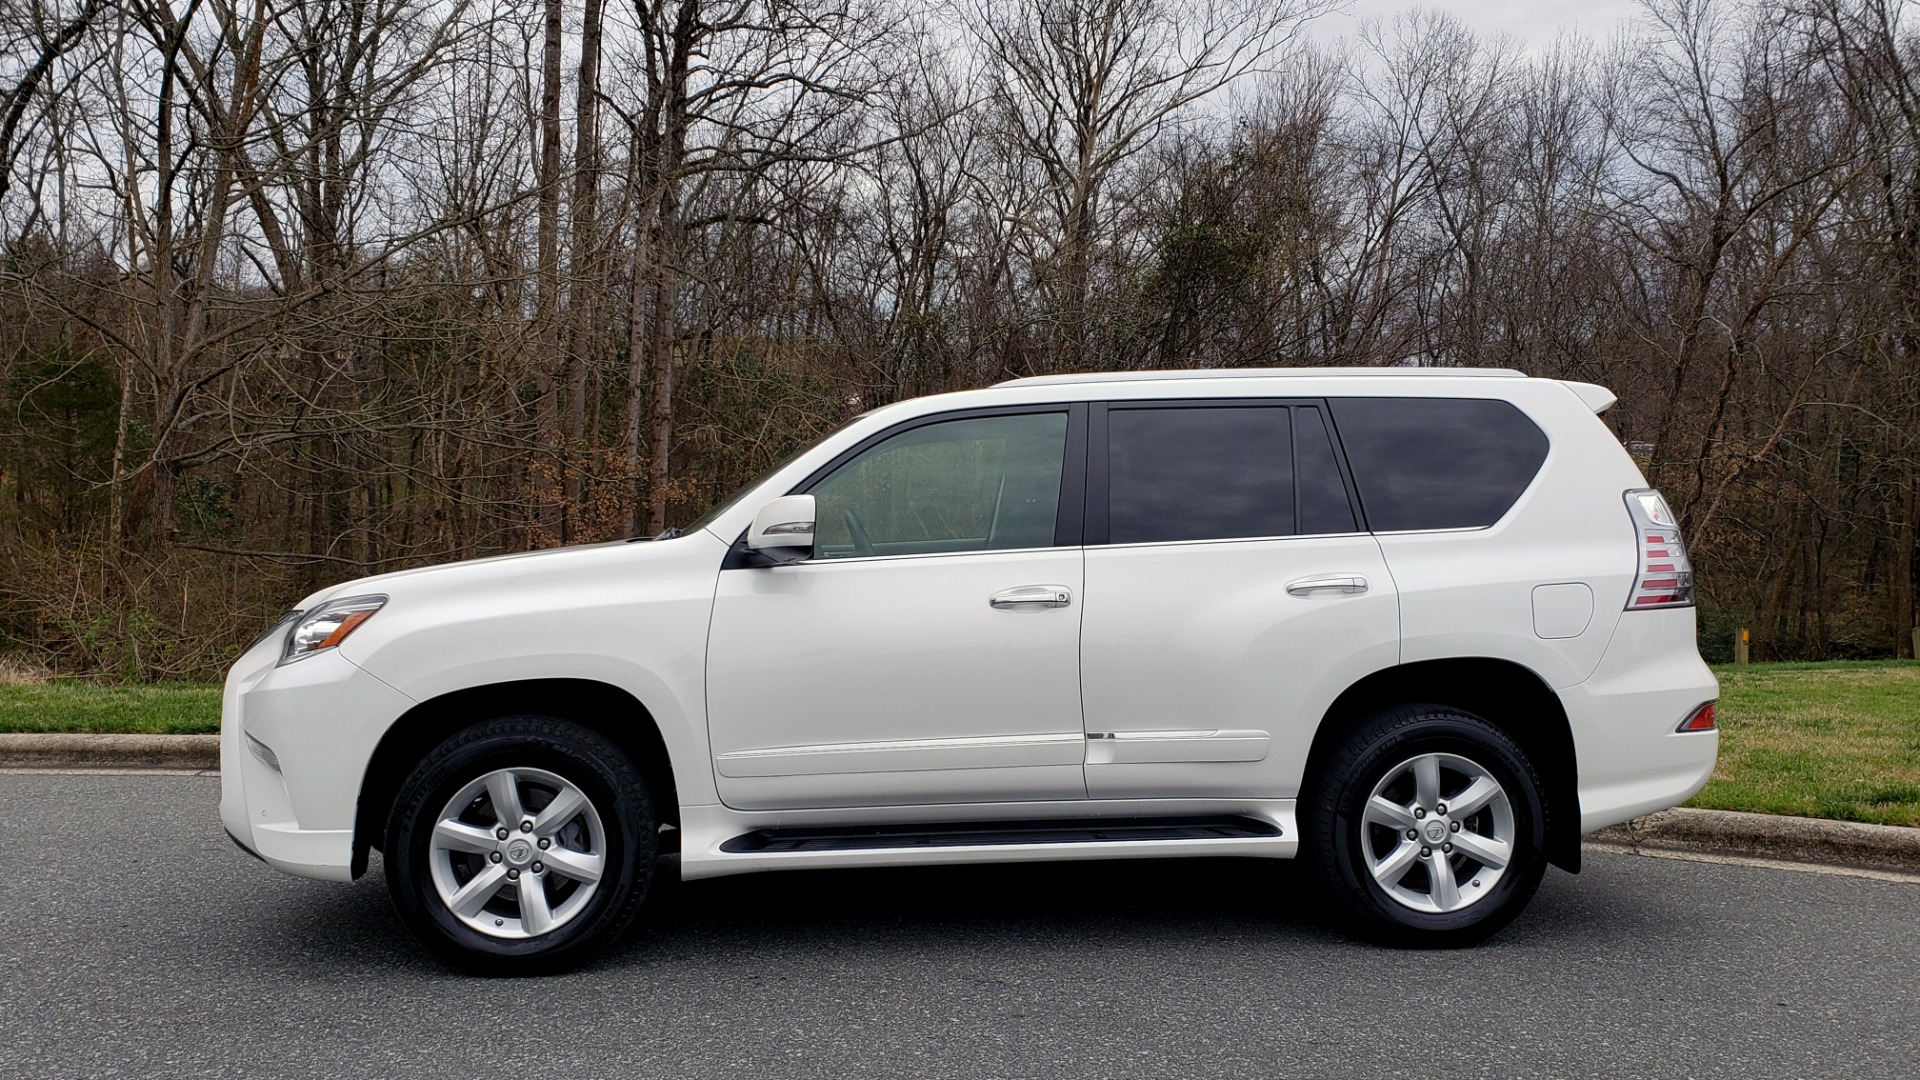 Used 2017 Lexus GX 460 4WD / NAV / VENT STS / SUNROOF / PARK ASST / BSM for sale Sold at Formula Imports in Charlotte NC 28227 2